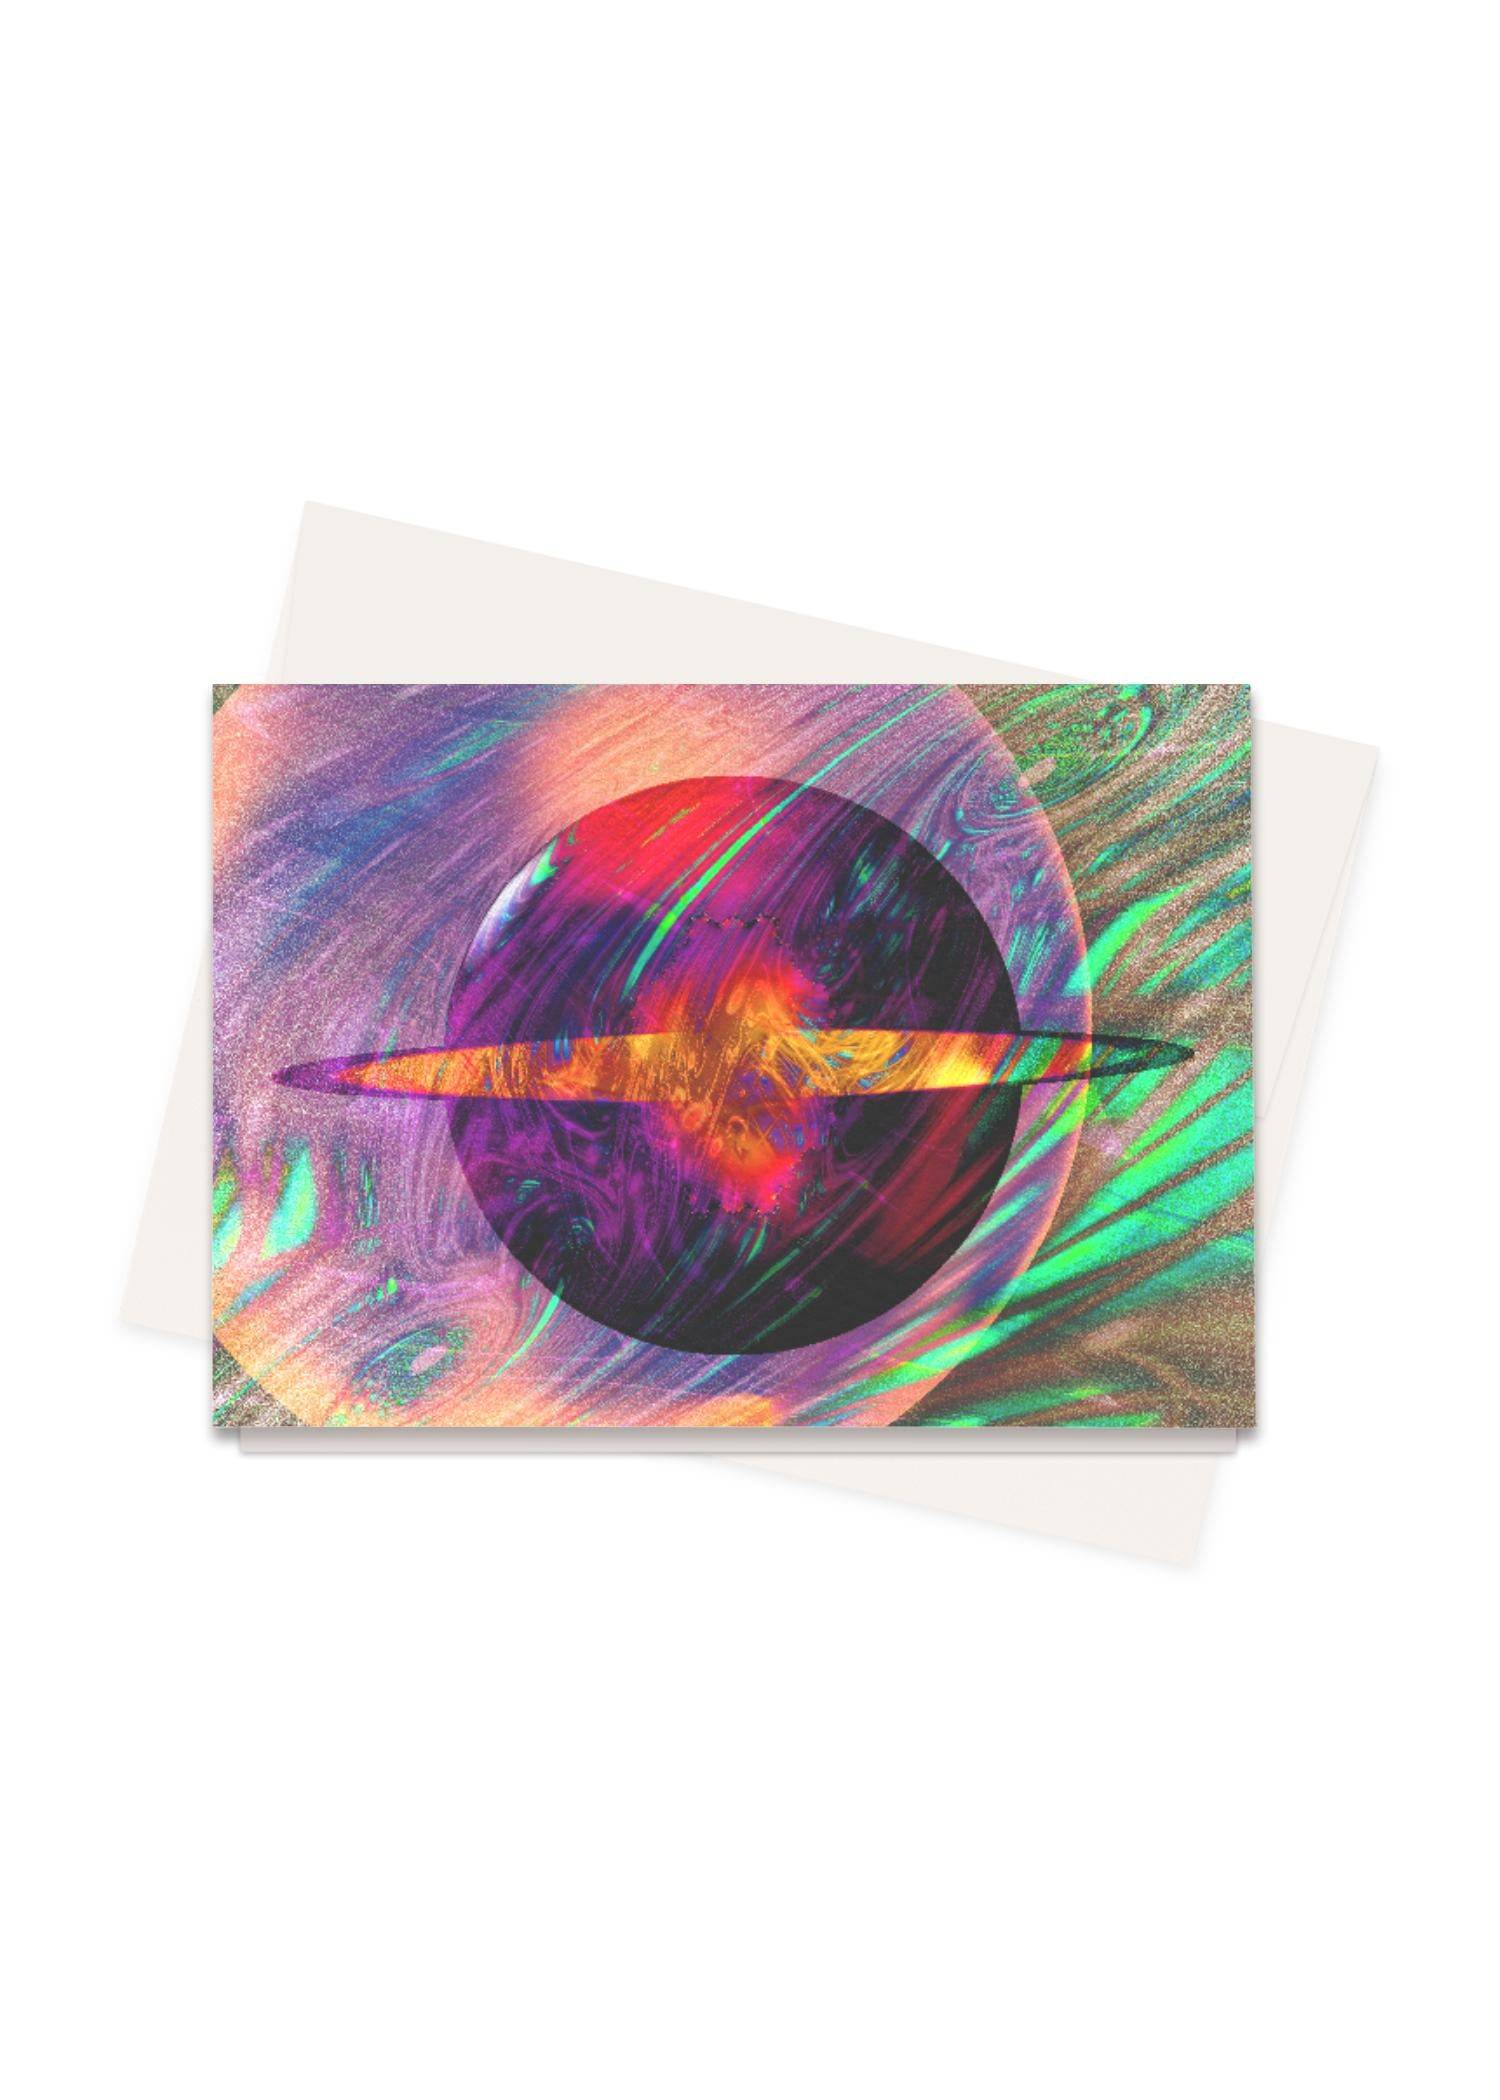 PRIDE Greeting Cards Set - Galaxy 11:11 #Pillows by PRIDE Original Artist  - Size: Set of 8